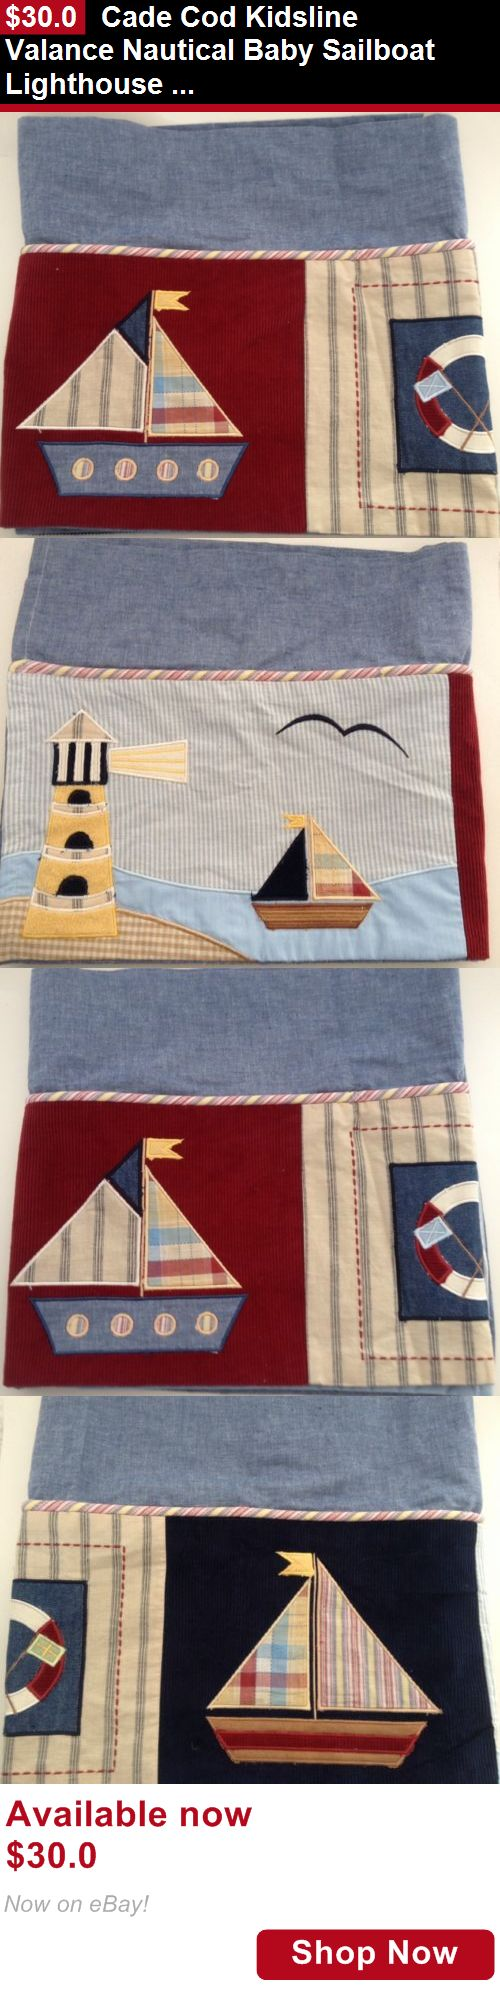 Window Treatments: Cade Cod Kidsline Valance Nautical Baby Sailboat Lighthouse Bedroom Window Treat BUY IT NOW ONLY: $30.0